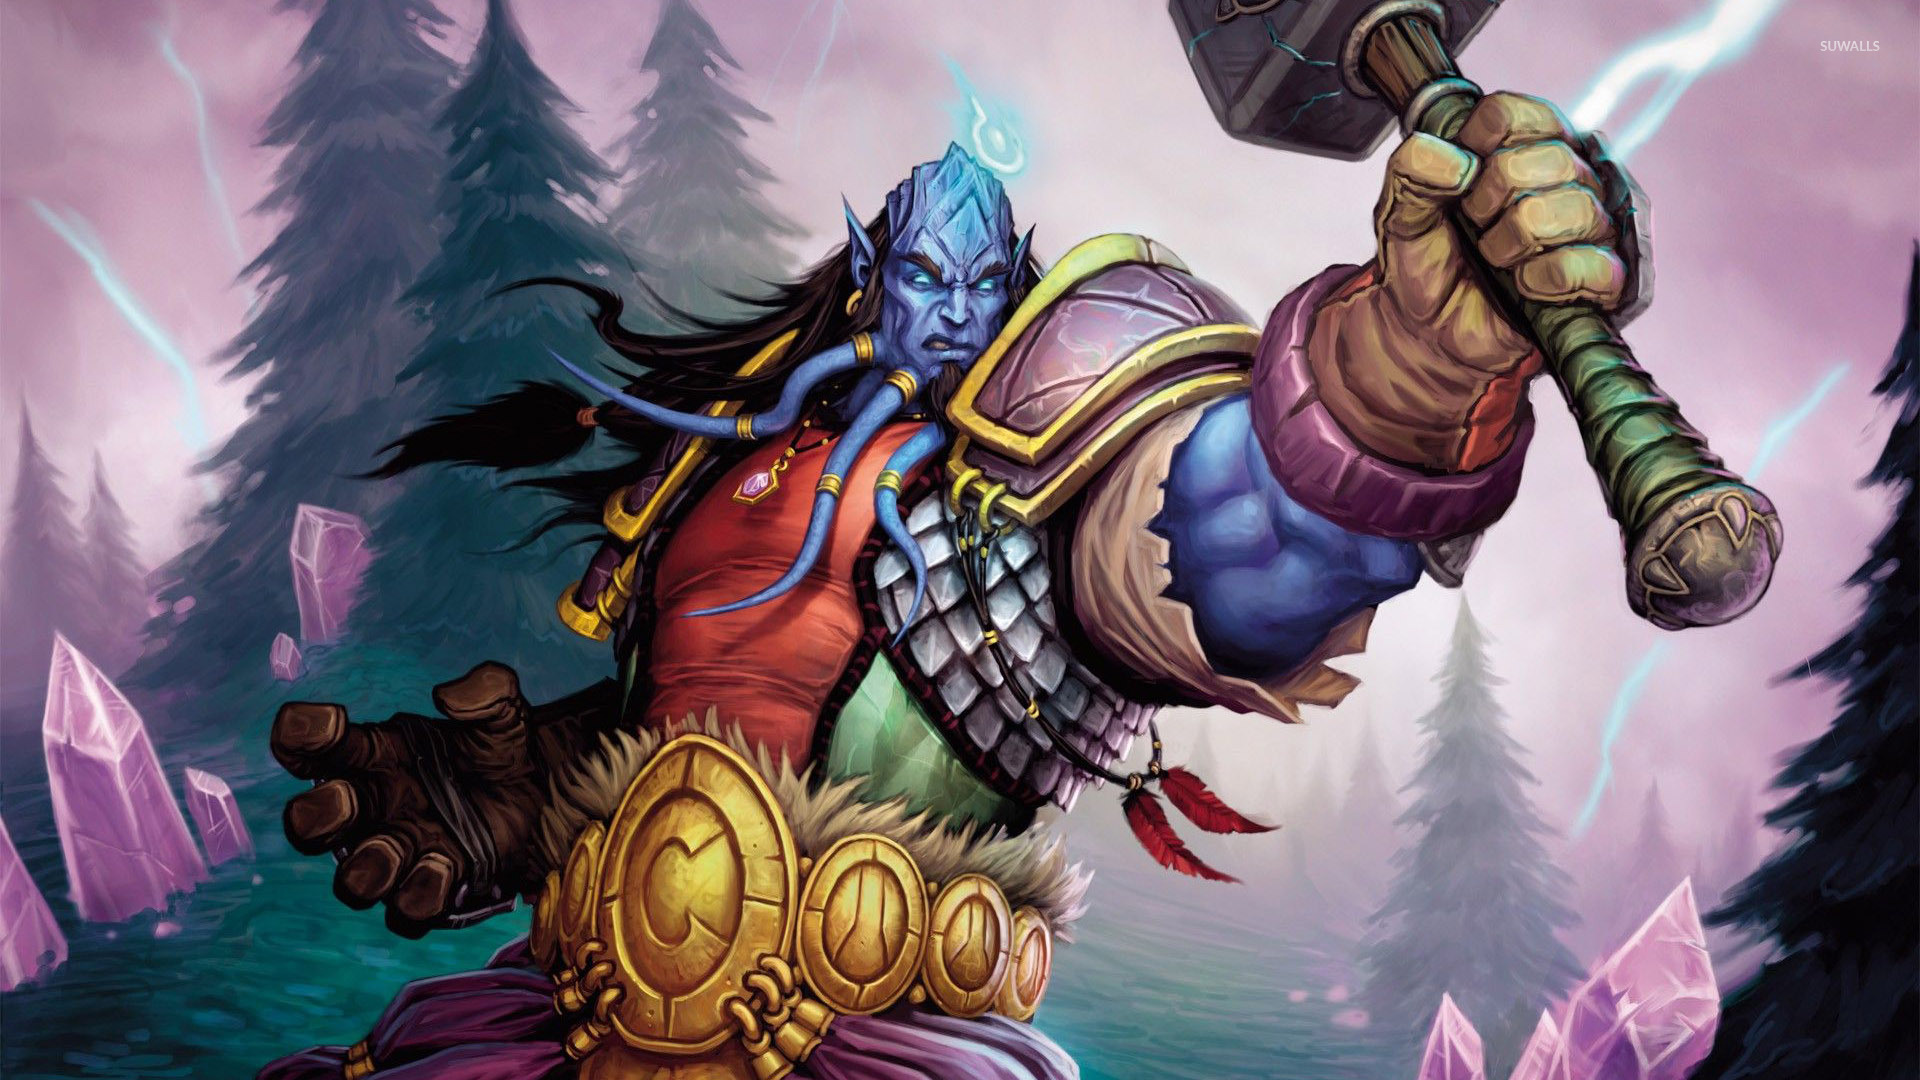 World Of Warcraft 9 Wallpaper Game Wallpapers 29207